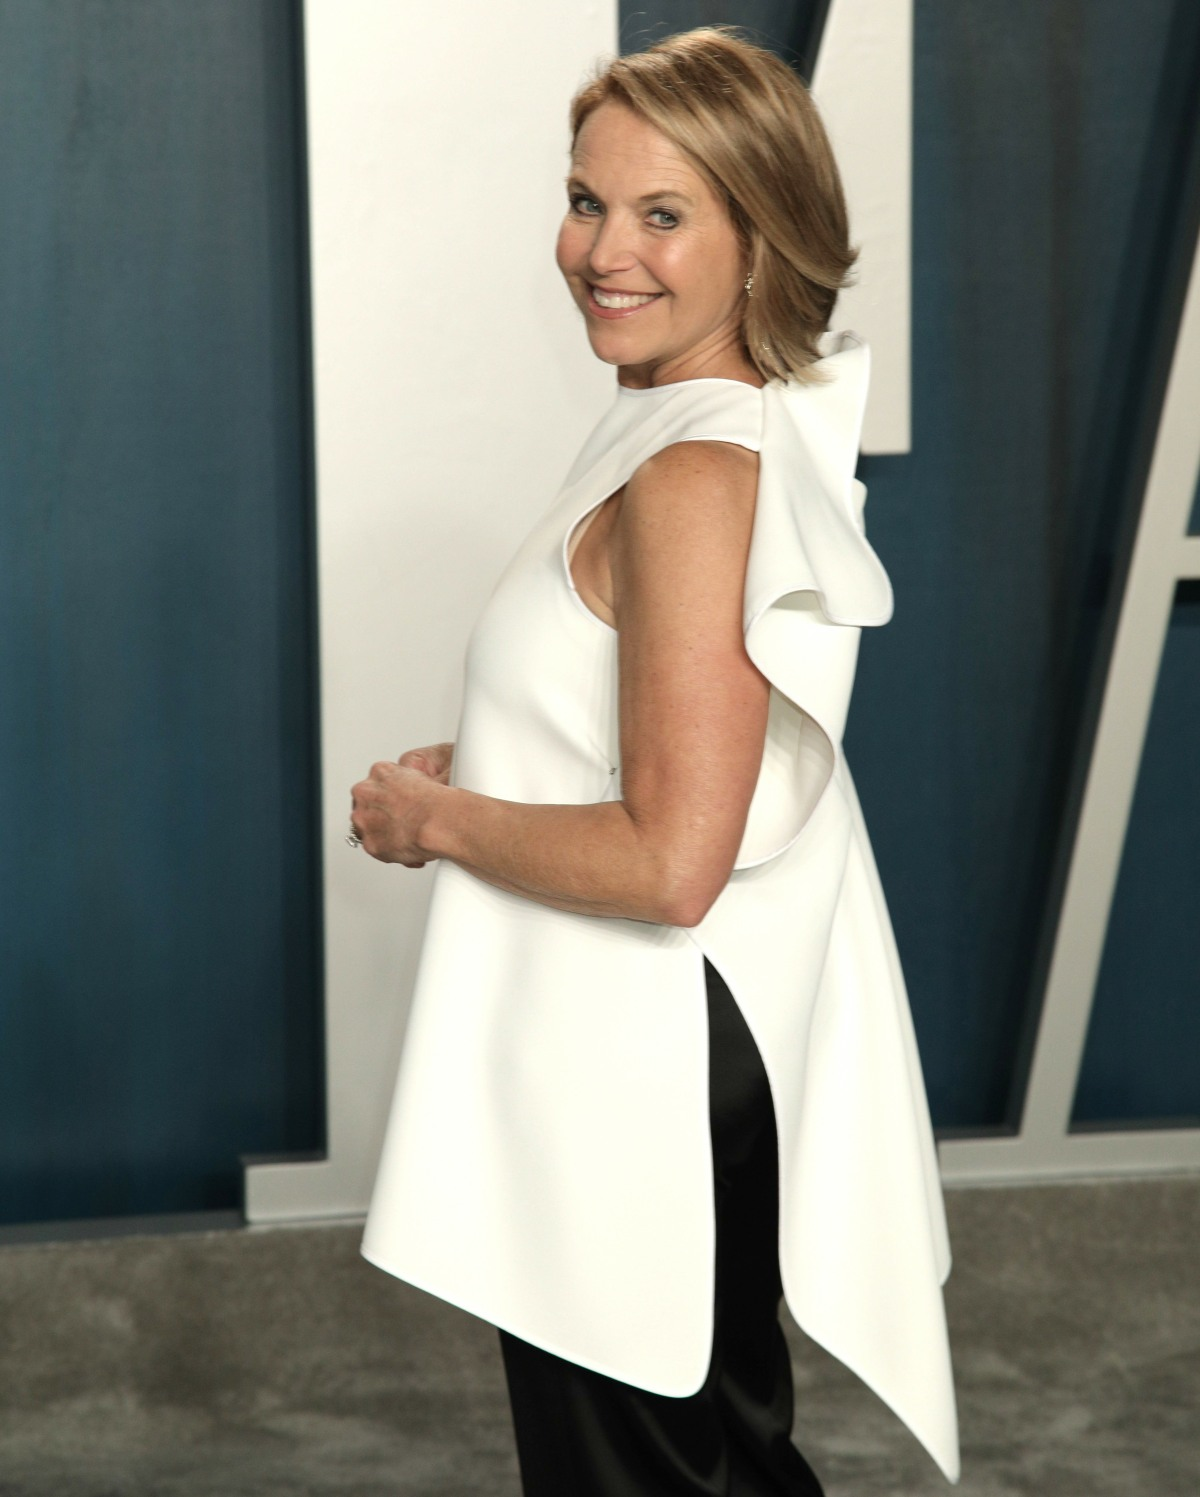 Katie Couric attends the 2020 Vanity Fair Oscar Party Celebrating the 92nd Annual Academy Awards hos...